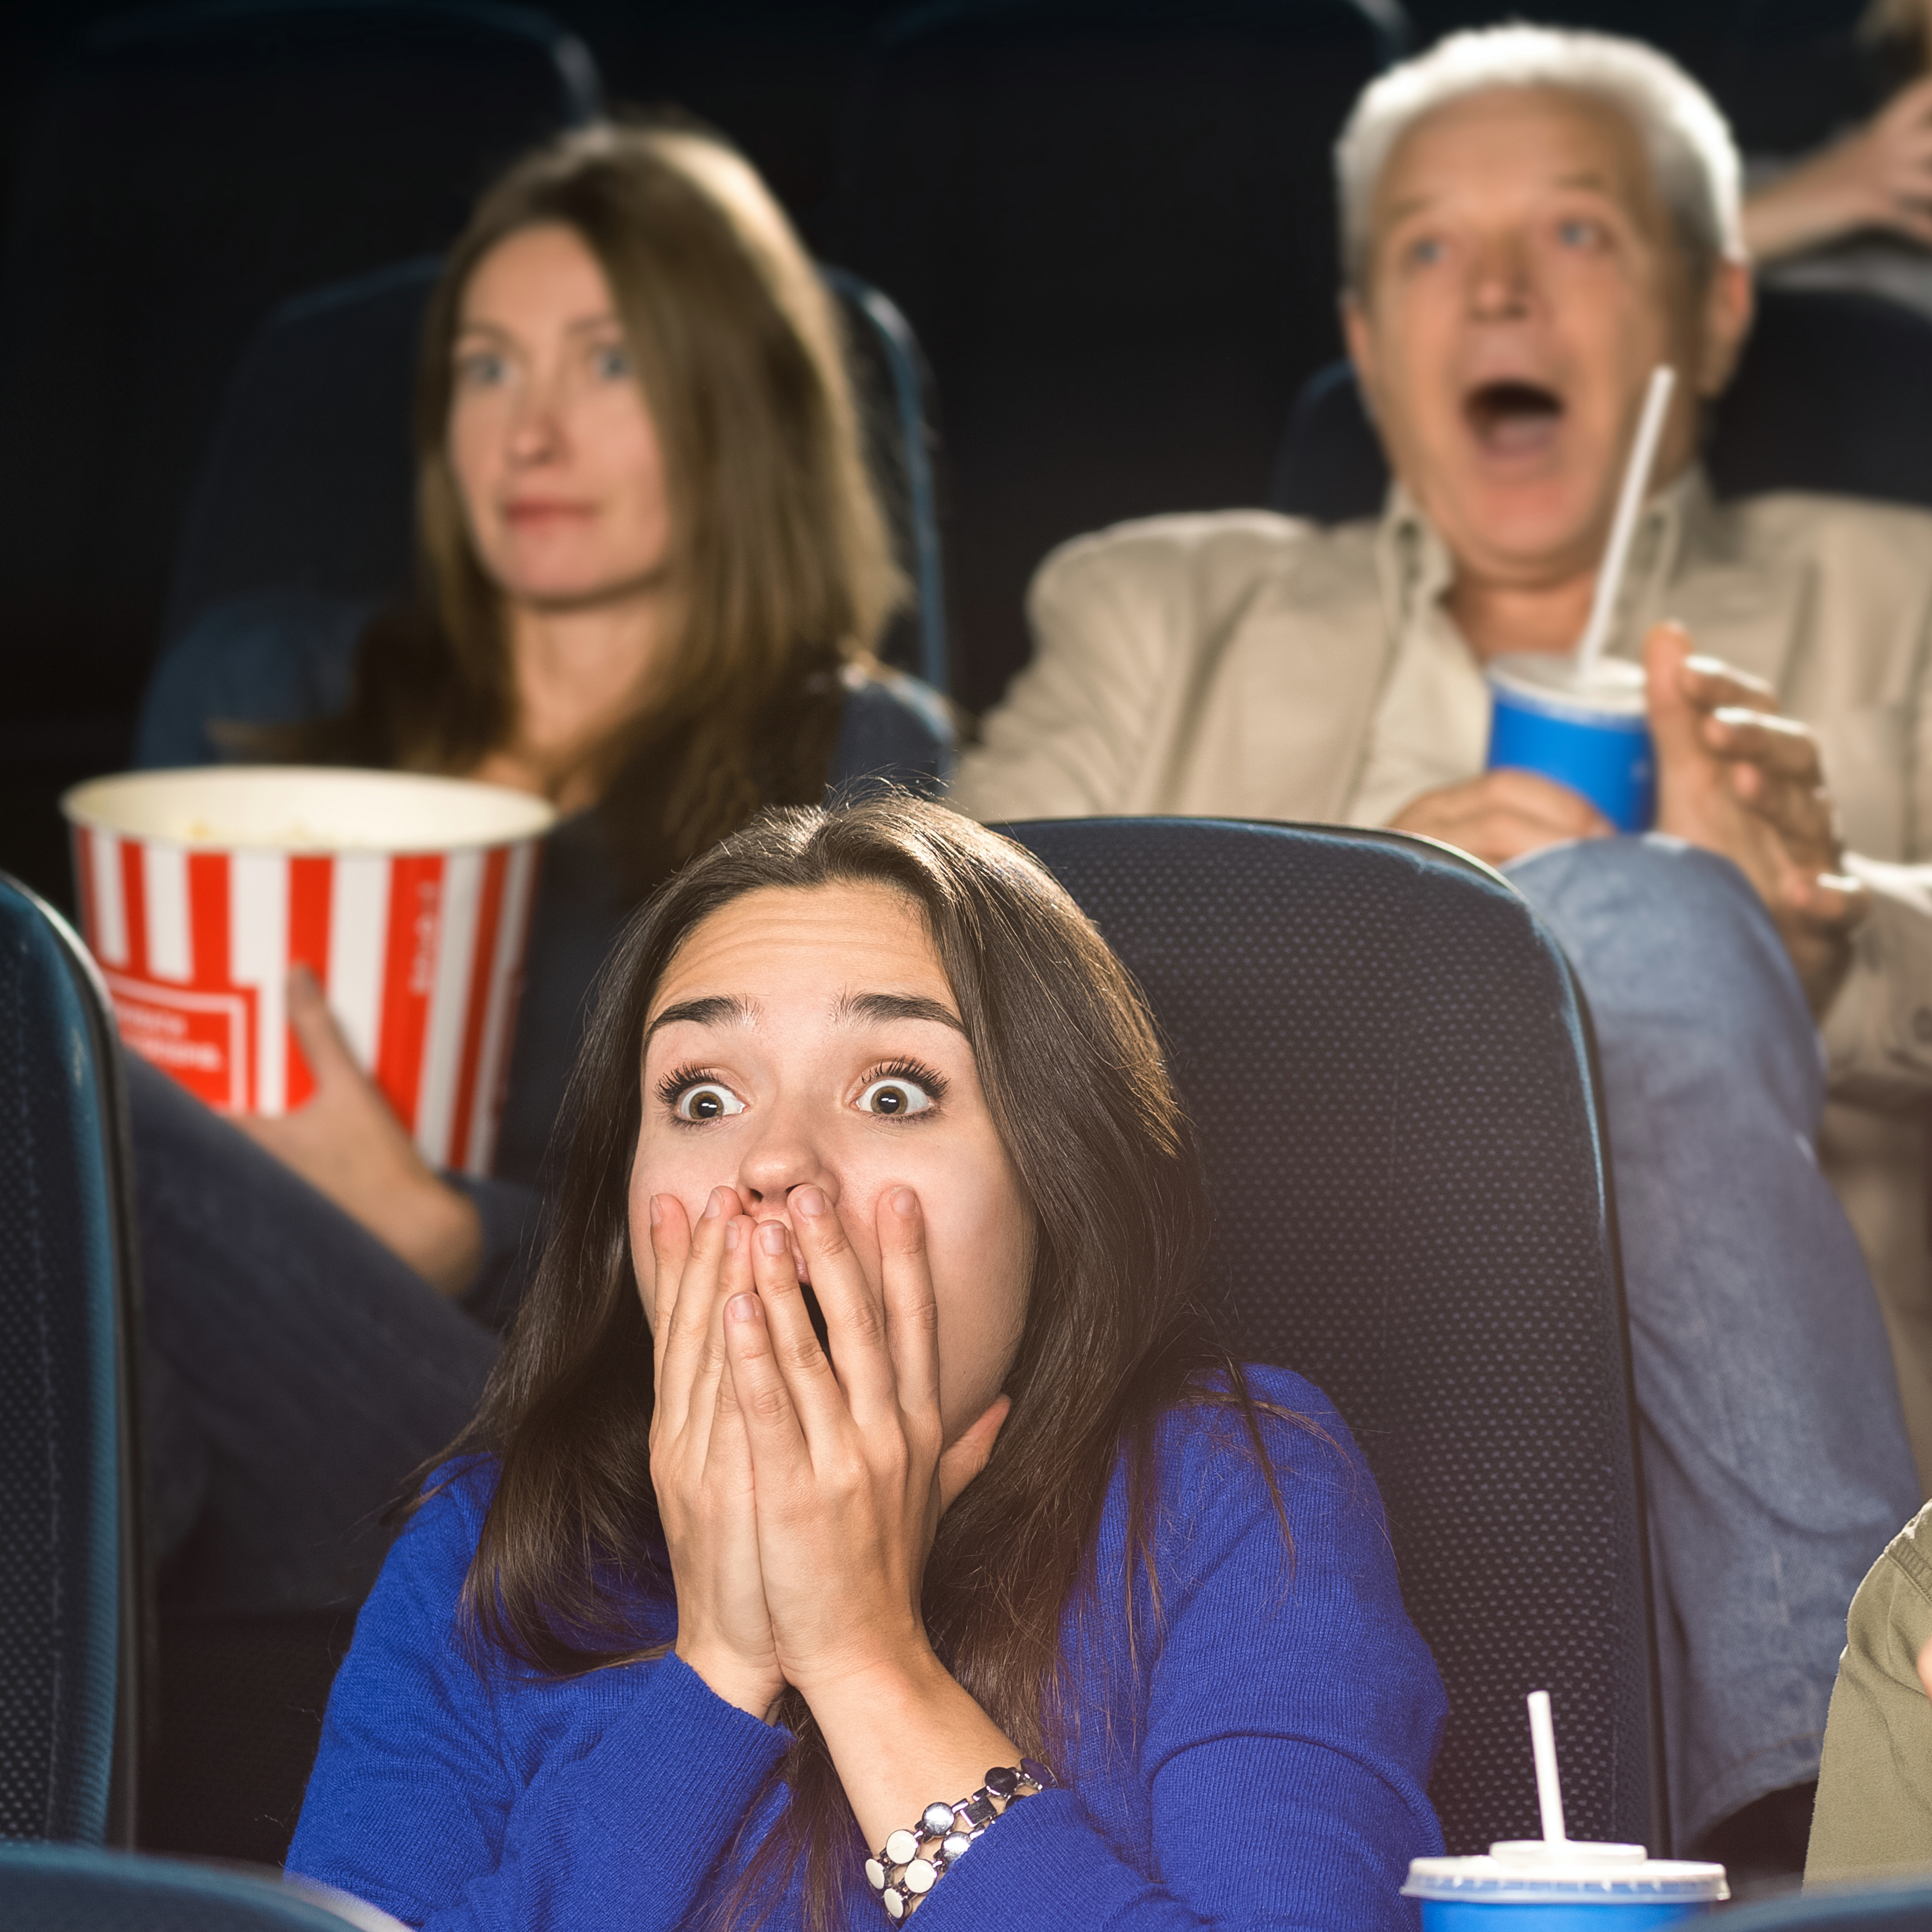 a movie theater with people in their seats holding popcorn and looking frightened and scared